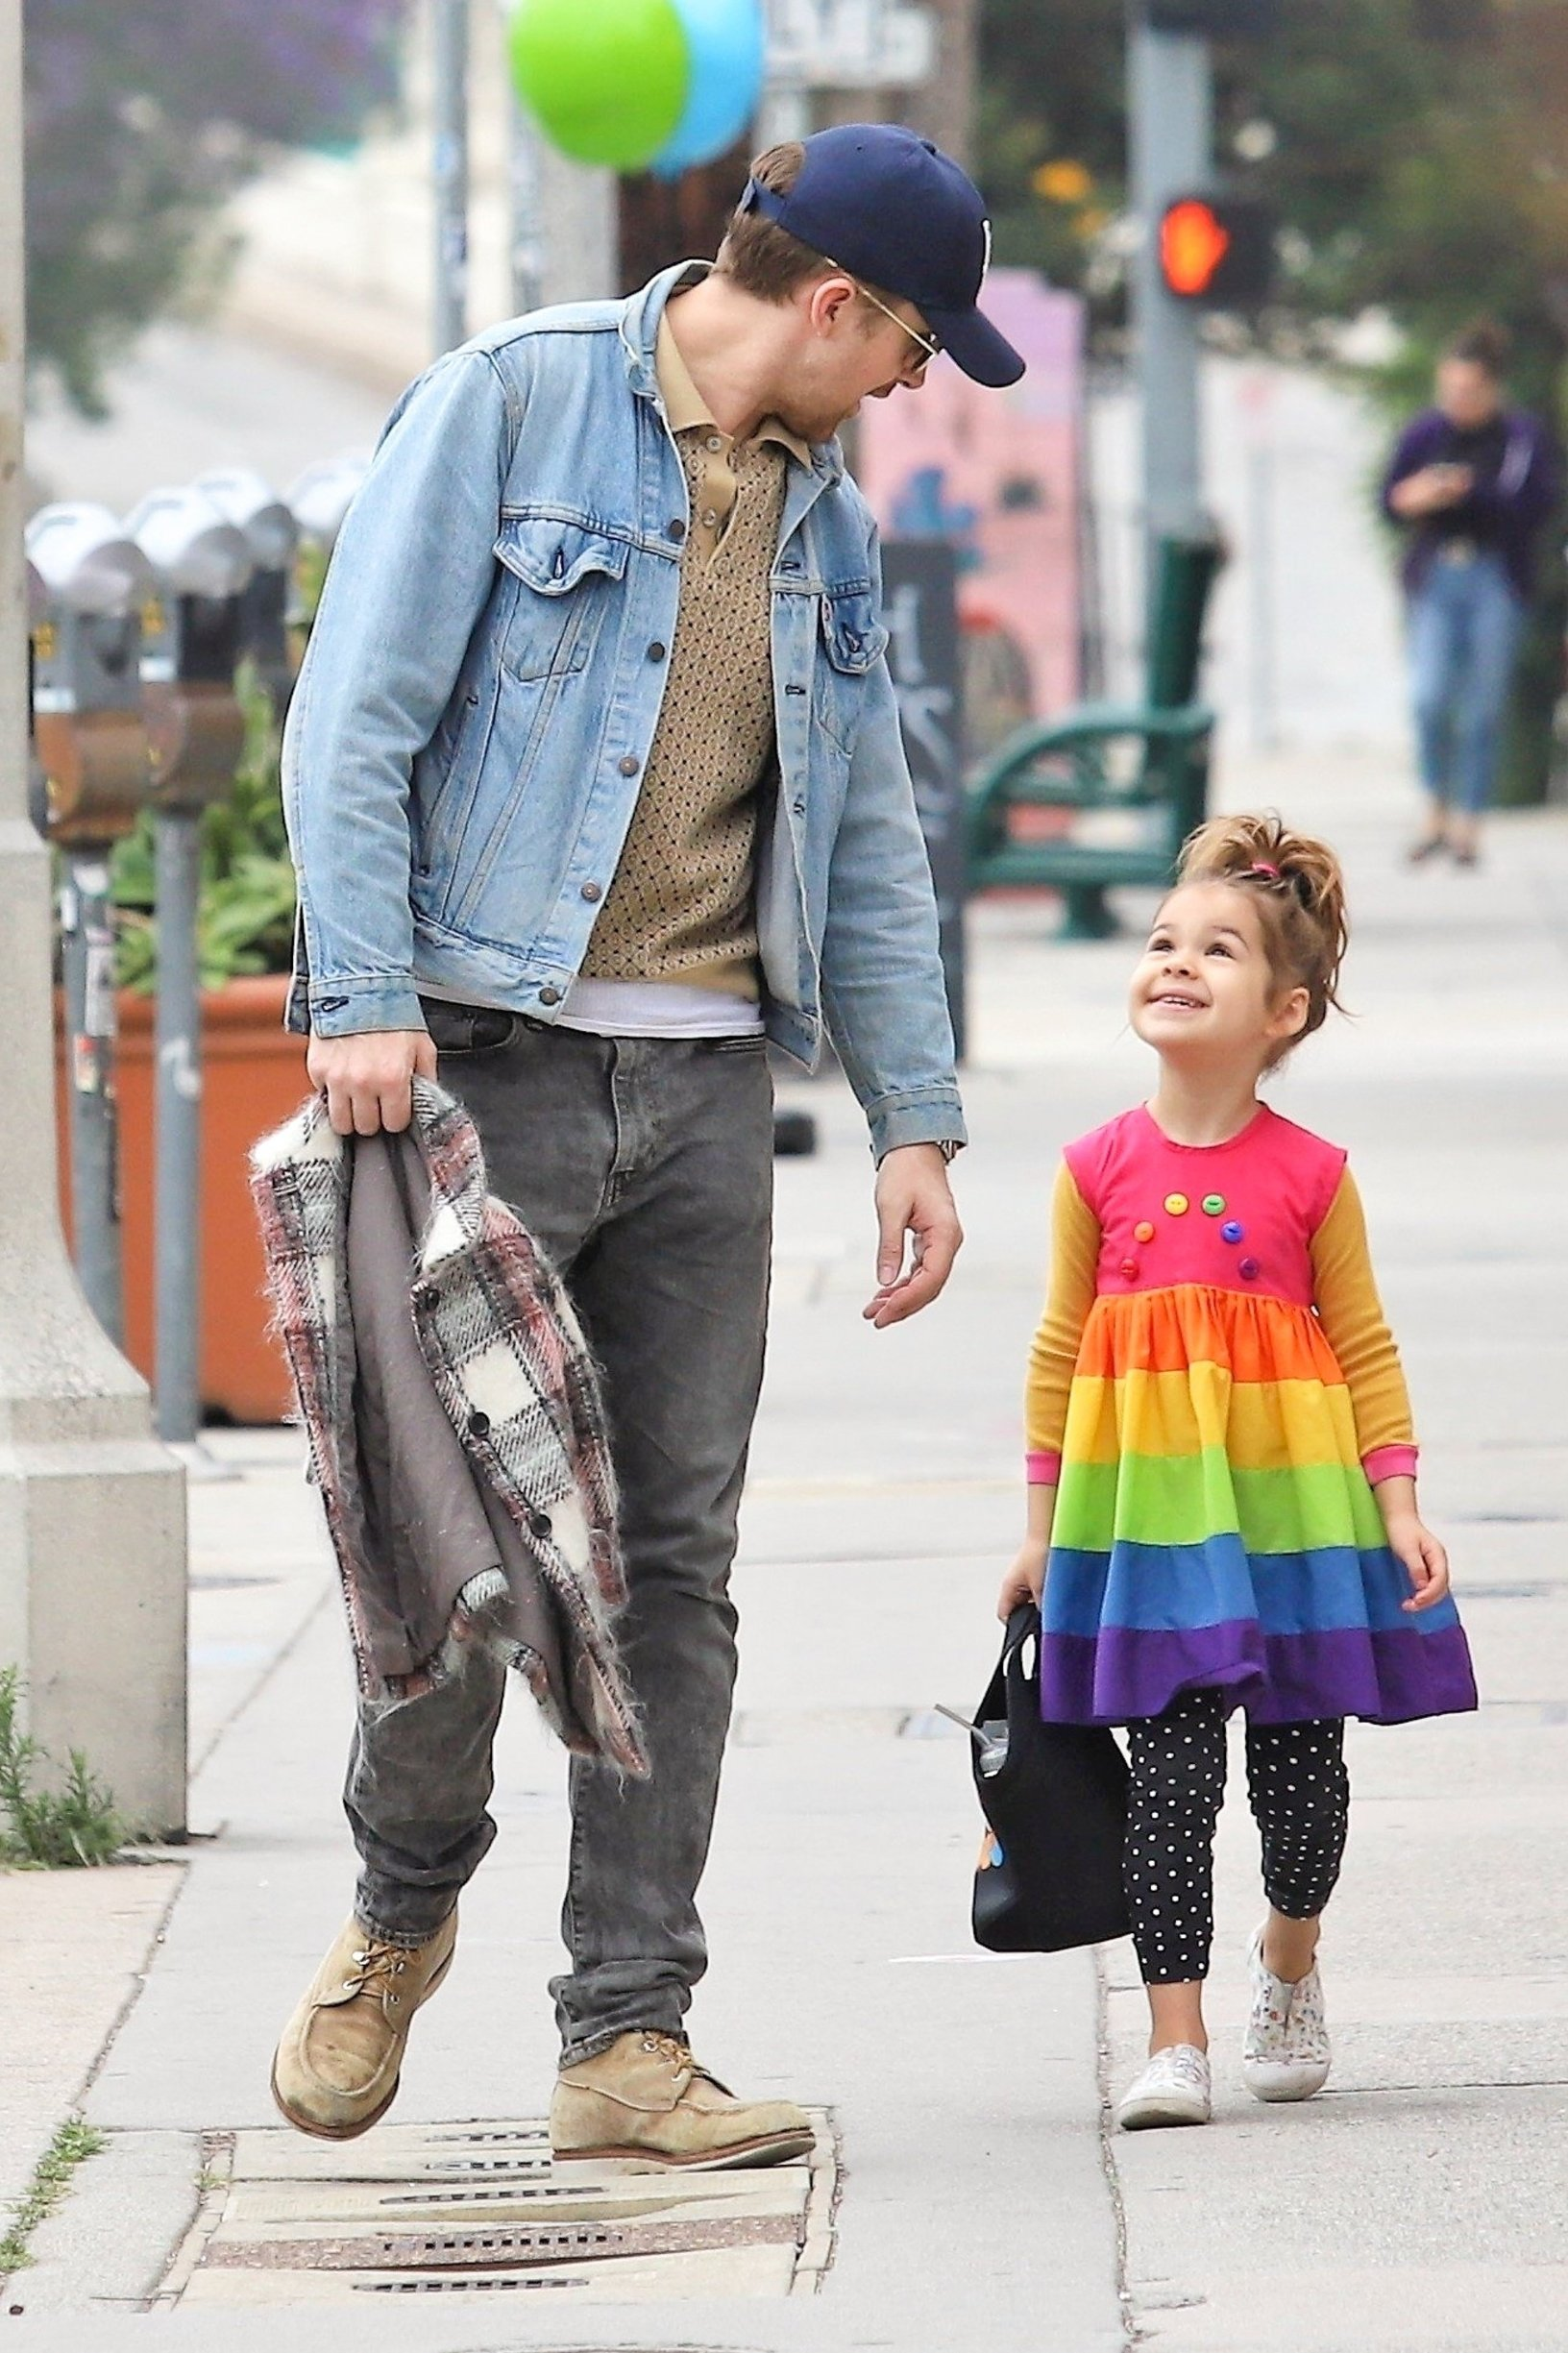 Los Angeles, CA  - *EXCLUSIVE*  - Actor Ryan Gosling takes a stroll with his little one Esmeralda Gosling. The little bundle of sunshine dons a cute rainbow striped dress with polka dotted pants. Ryan keeps things casual in a light blue denim jacket and faded black pants.  Pictured: Ryan Gosling    *UK Clients - Pictures Containing Children Please Pixelate Face Prior To Publication*, Image: 432921268, License: Rights-managed, Restrictions: , Model Release: no, Credit line: Profimedia, Backgrid USA